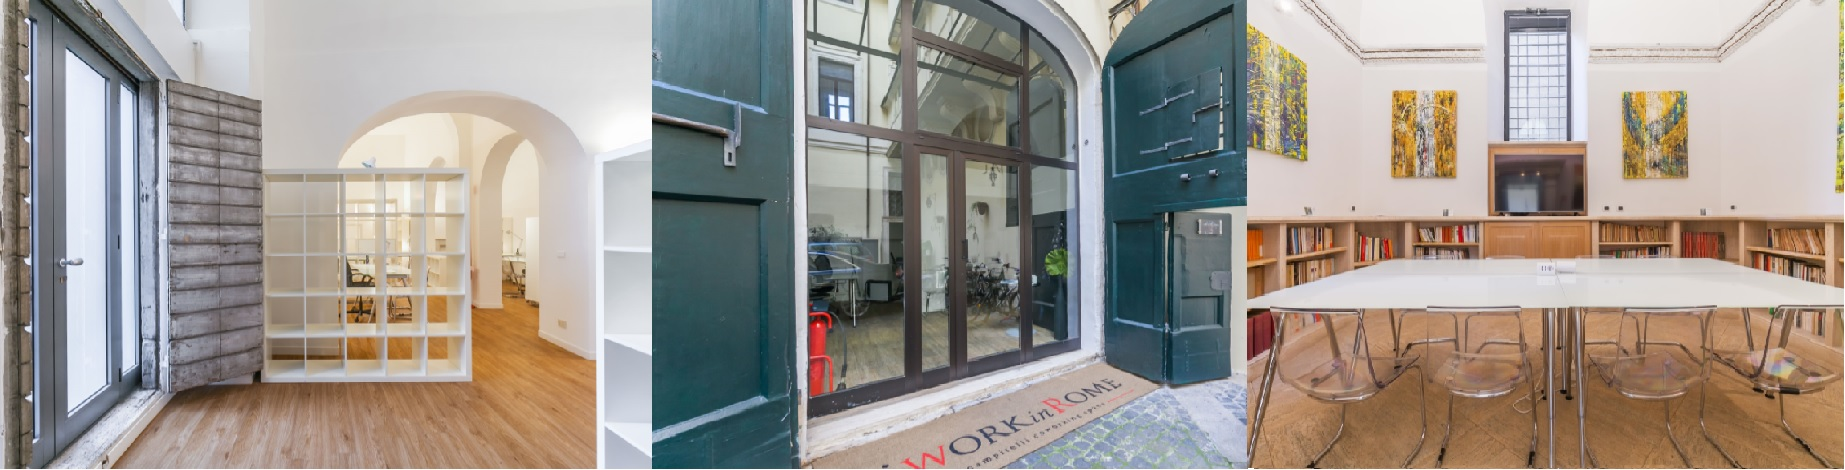 furnished temporary offices and coworking spaces in rome